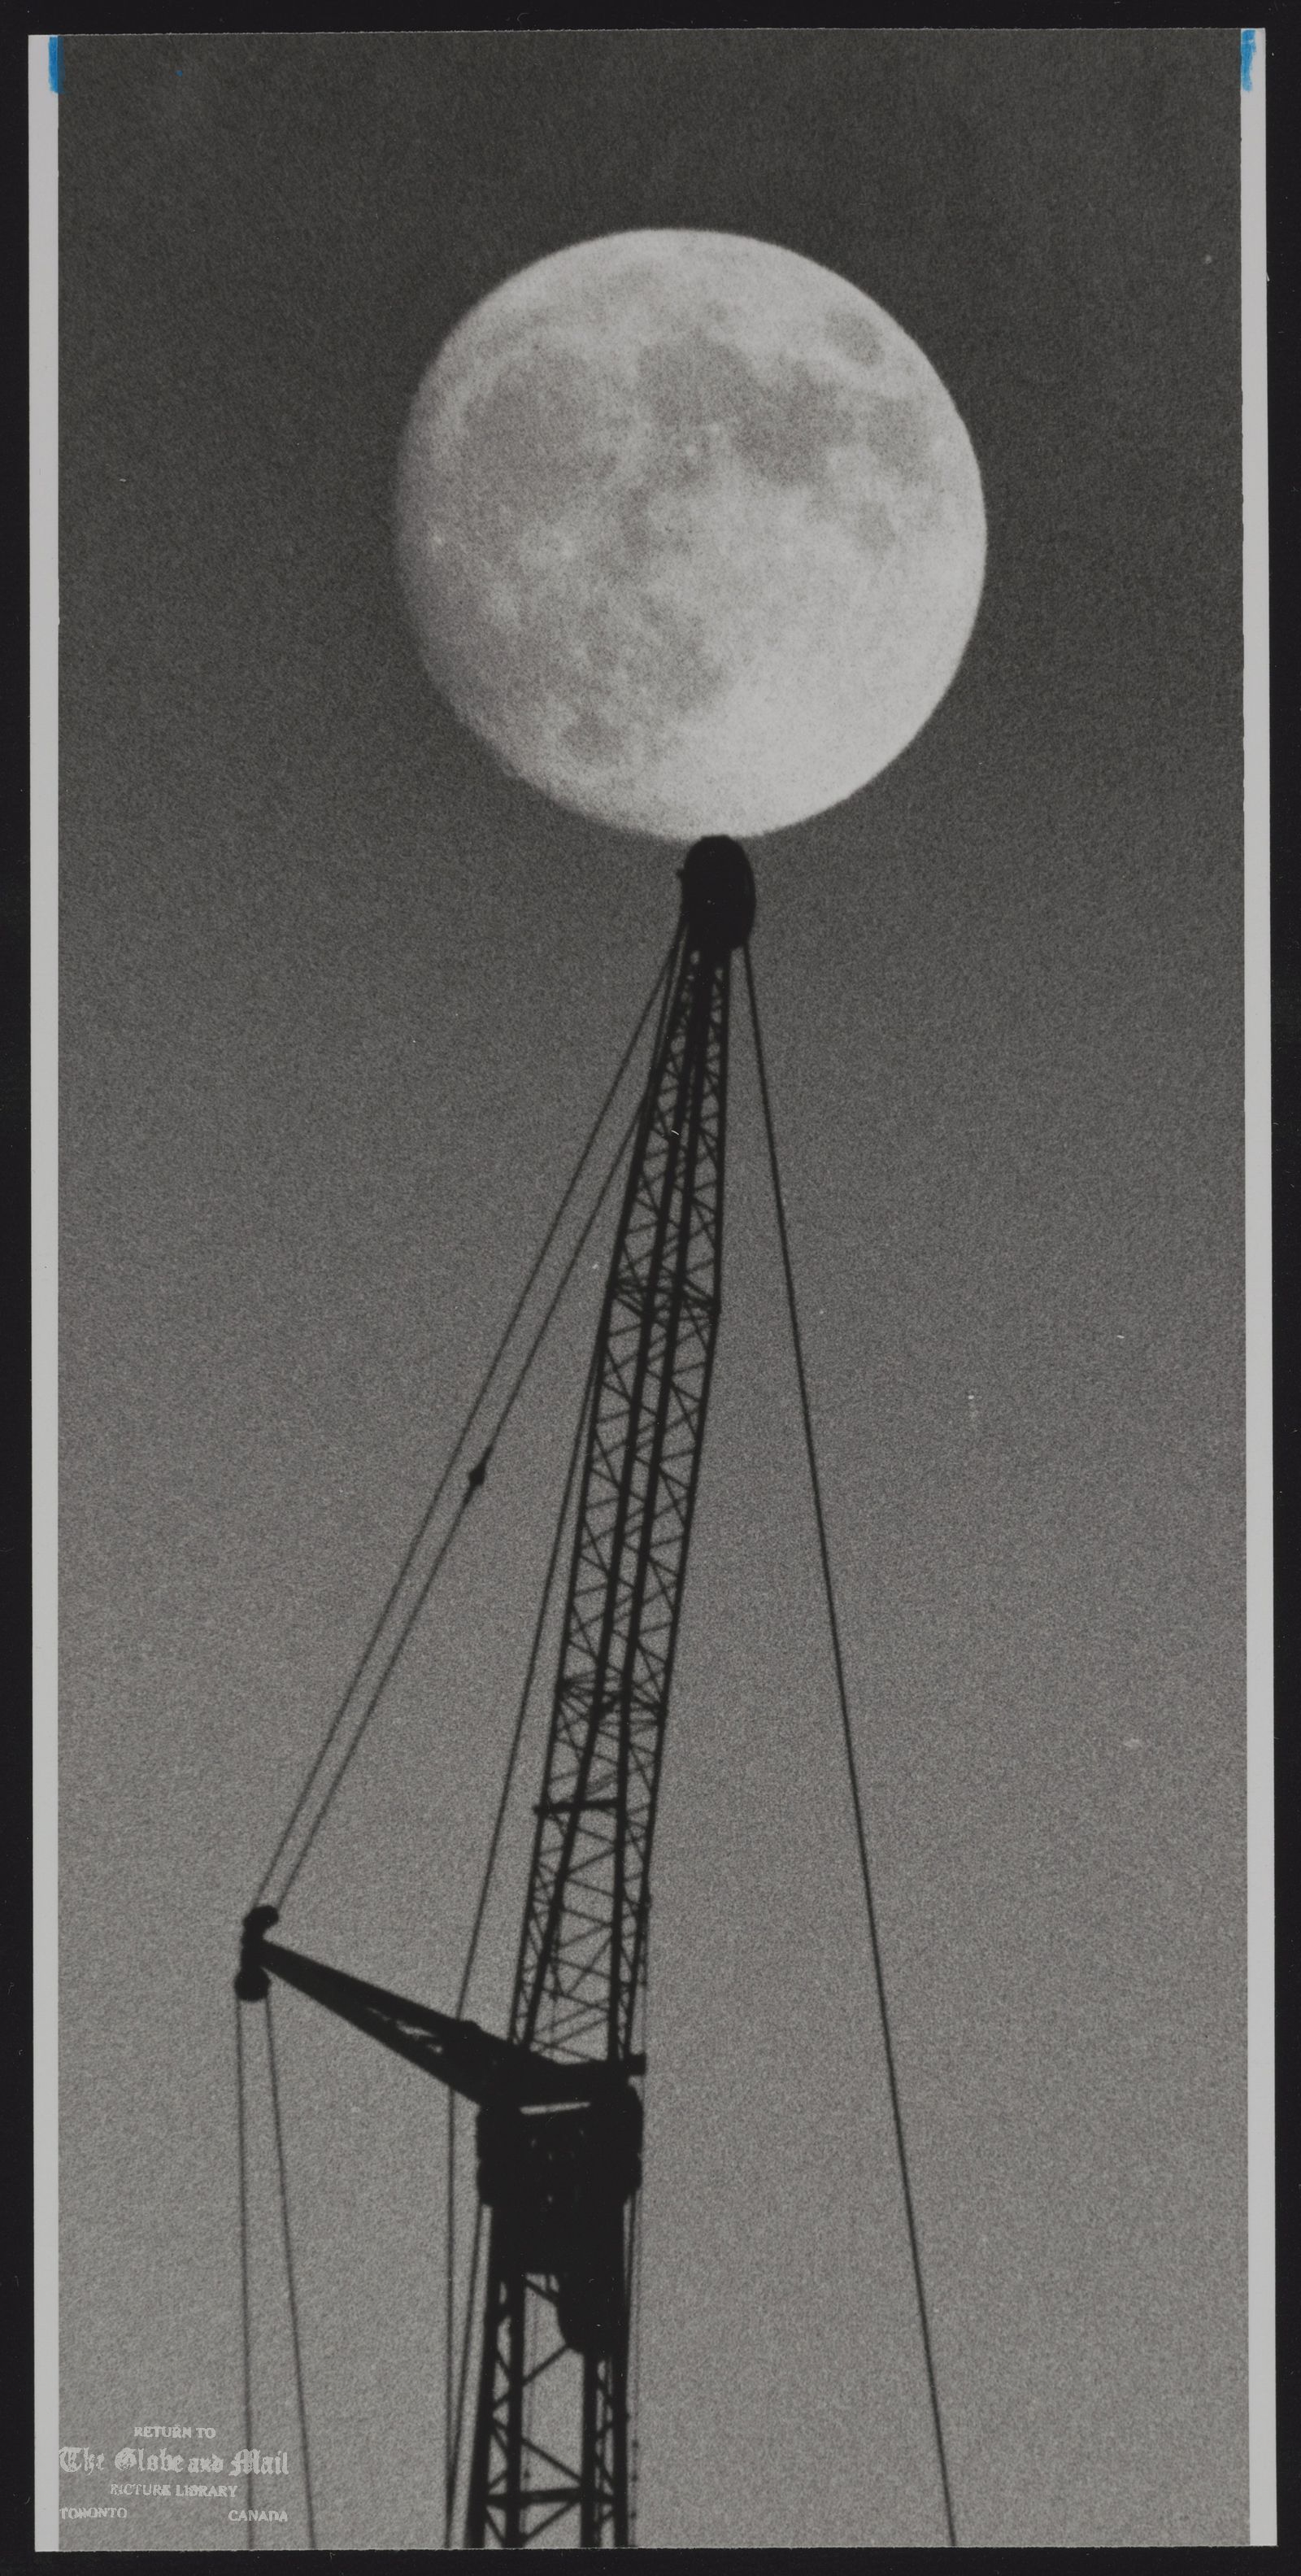 MOON THE MOON APPEARS TO BE VERY DELICATELY BALANCED ON A CRANE AT THE SITE OF SKYDOME CONSTRUCTION.